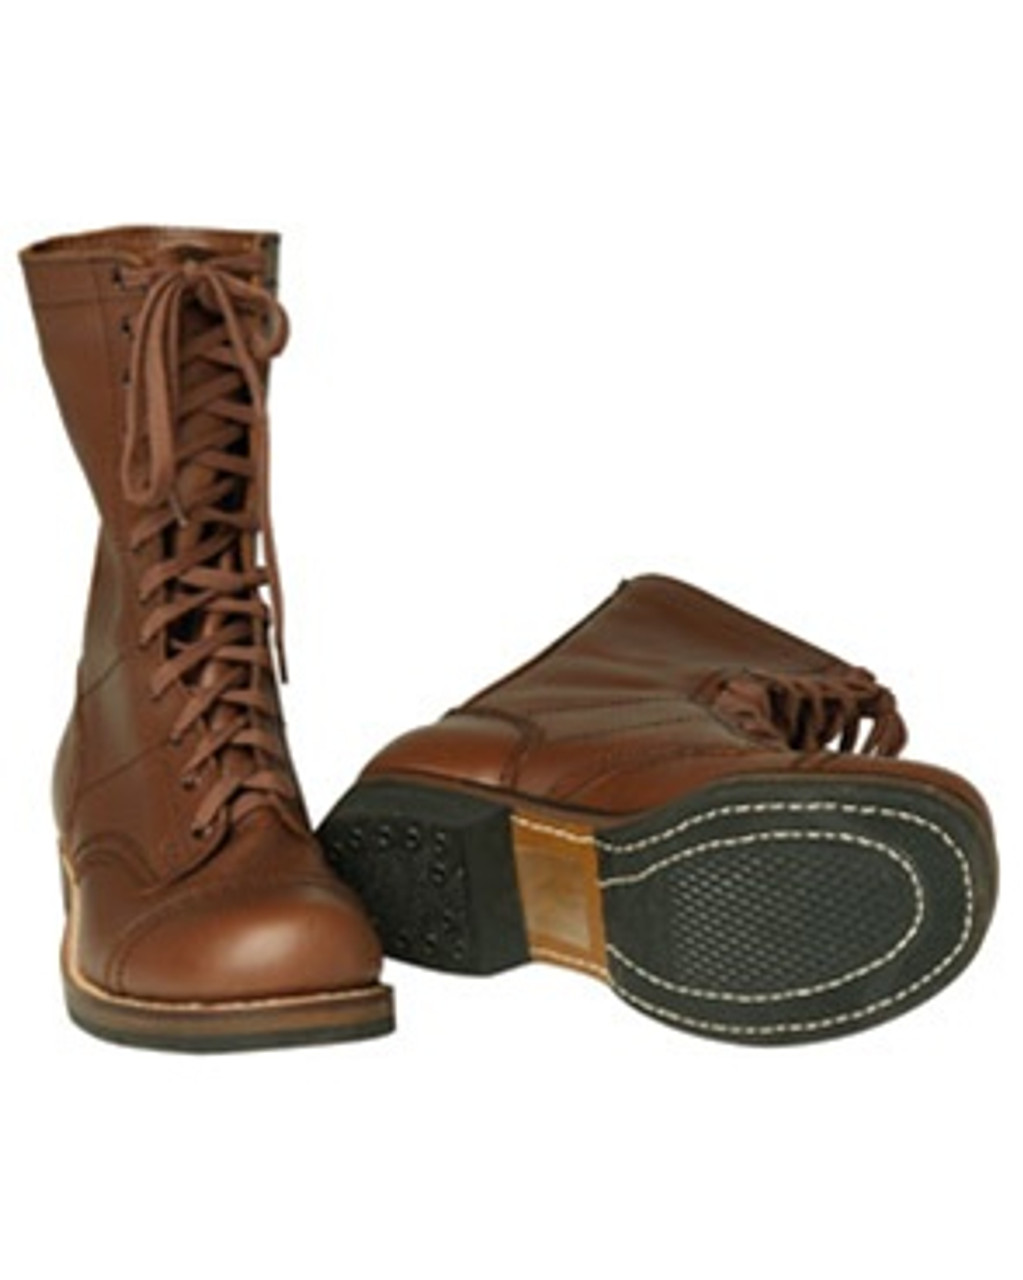 Paratrooper Jump Boots from Hessen Antique